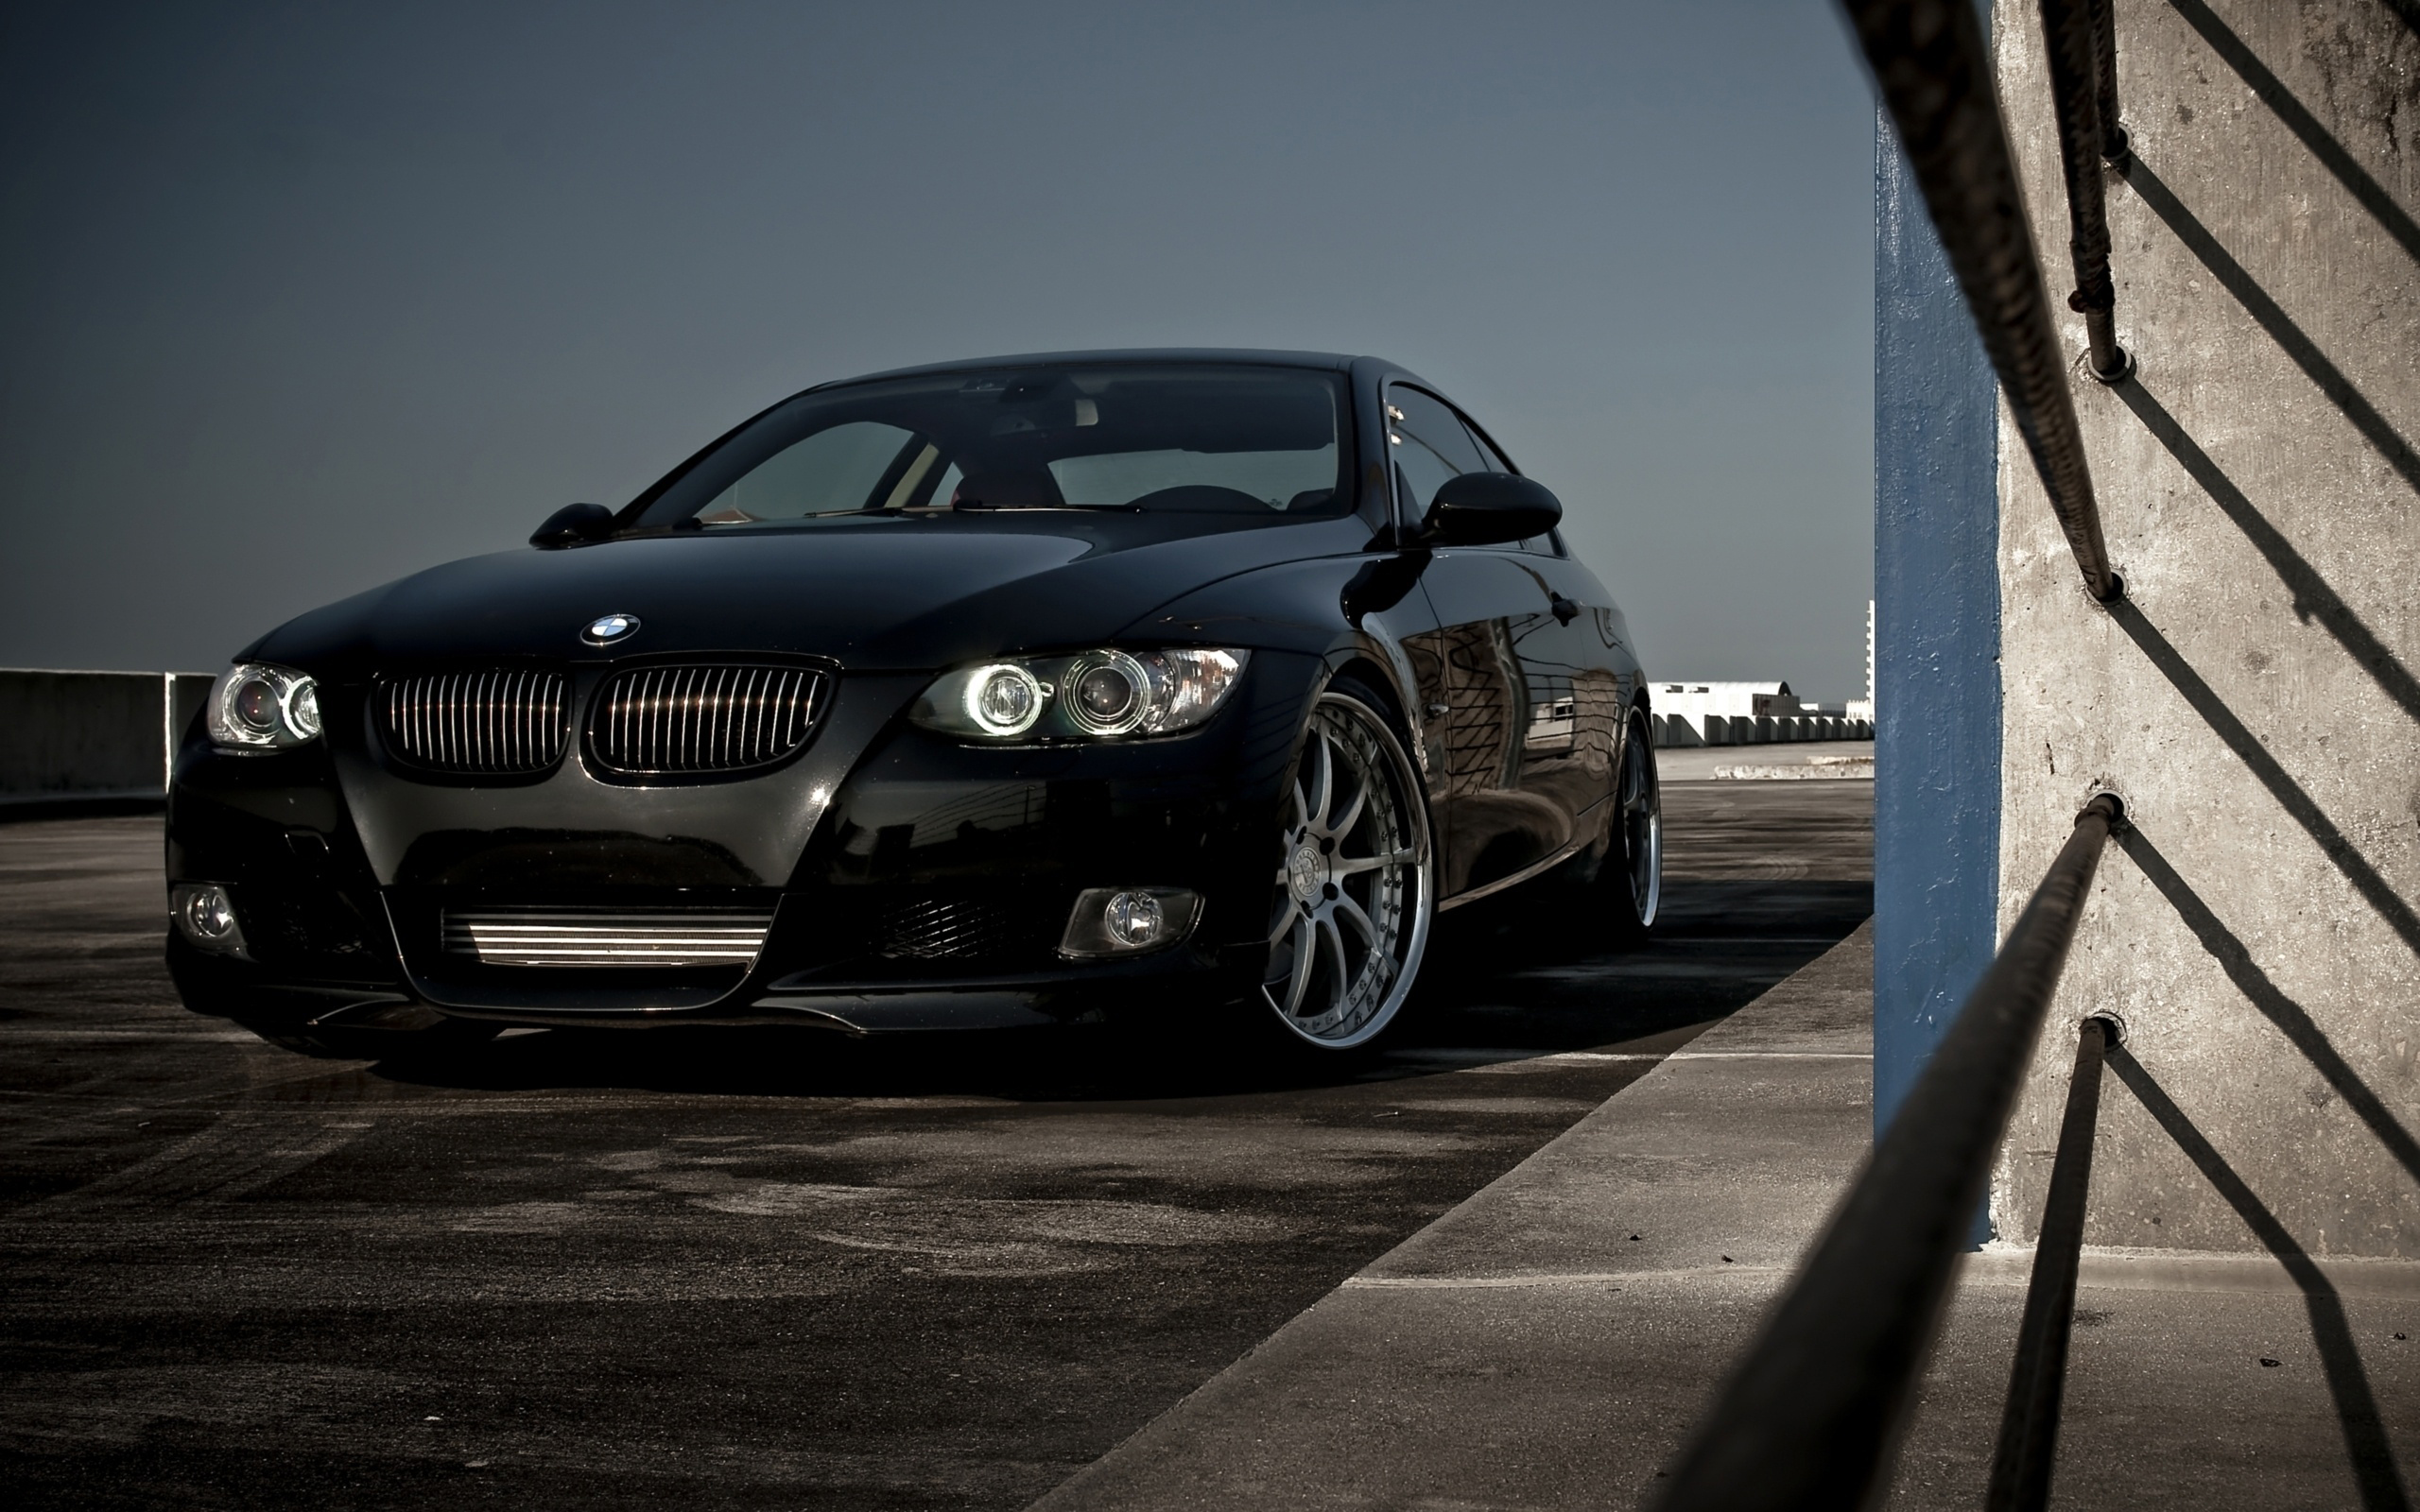 15 Fantastic Hd Bmw Wallpapers